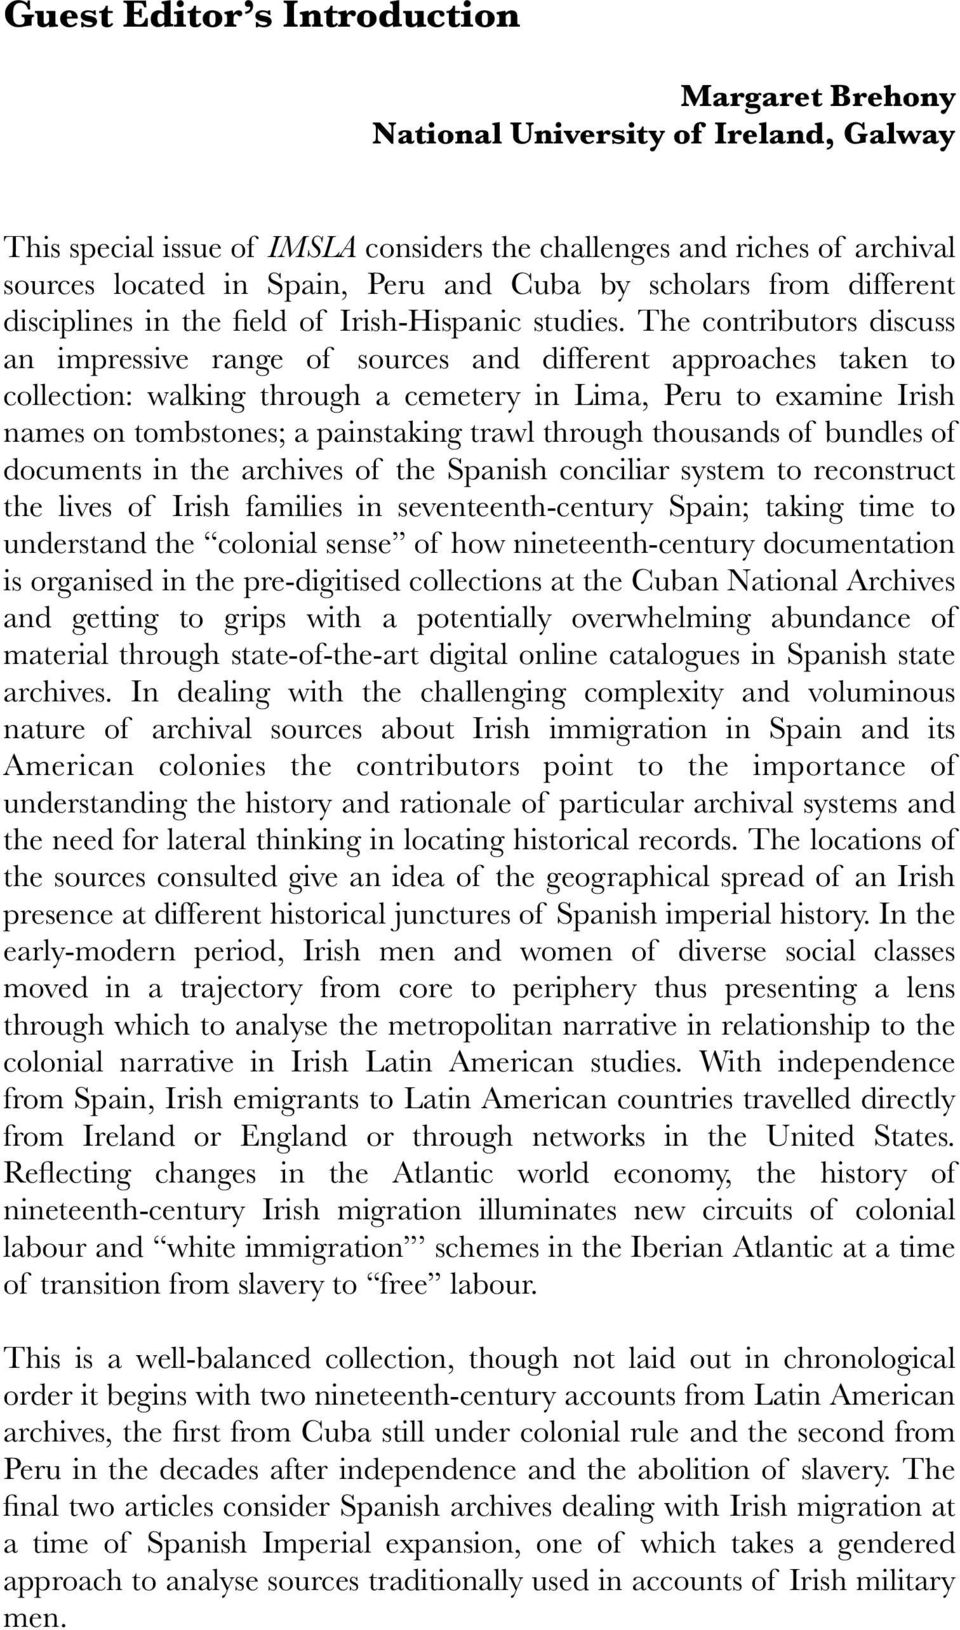 The contributors discuss an impressive range of sources and different approaches taken to collection: walking through a cemetery in Lima, Peru to examine Irish names on tombstones; a painstaking